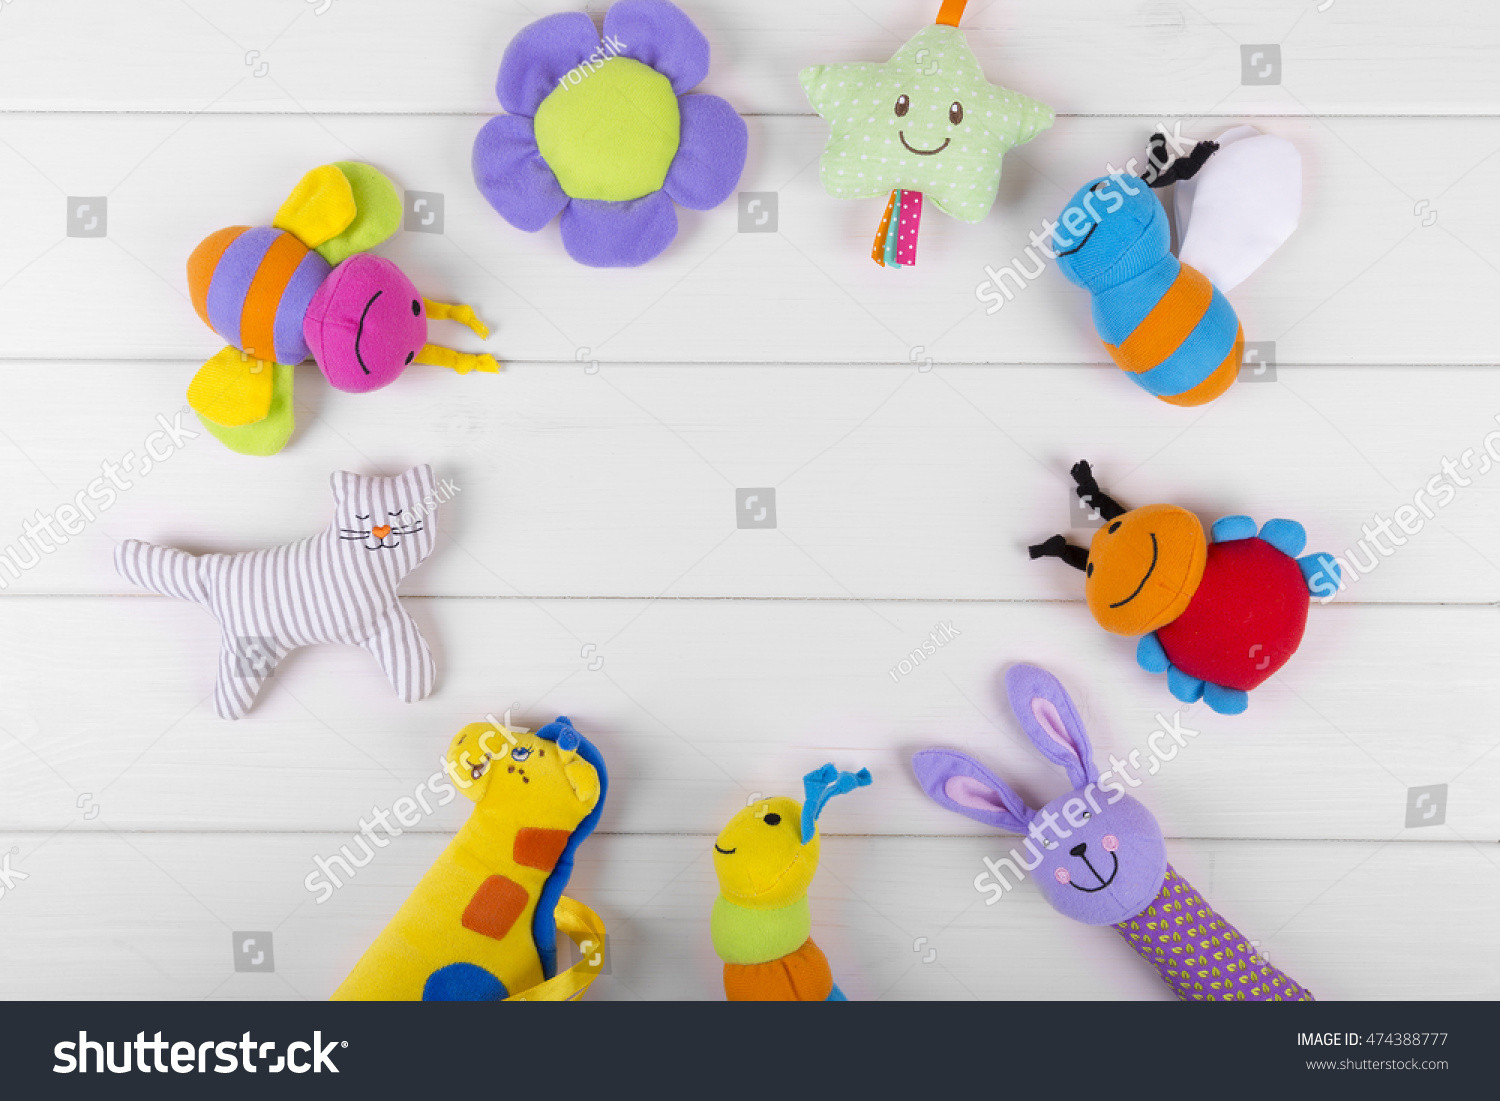 soft toys background - photo #26